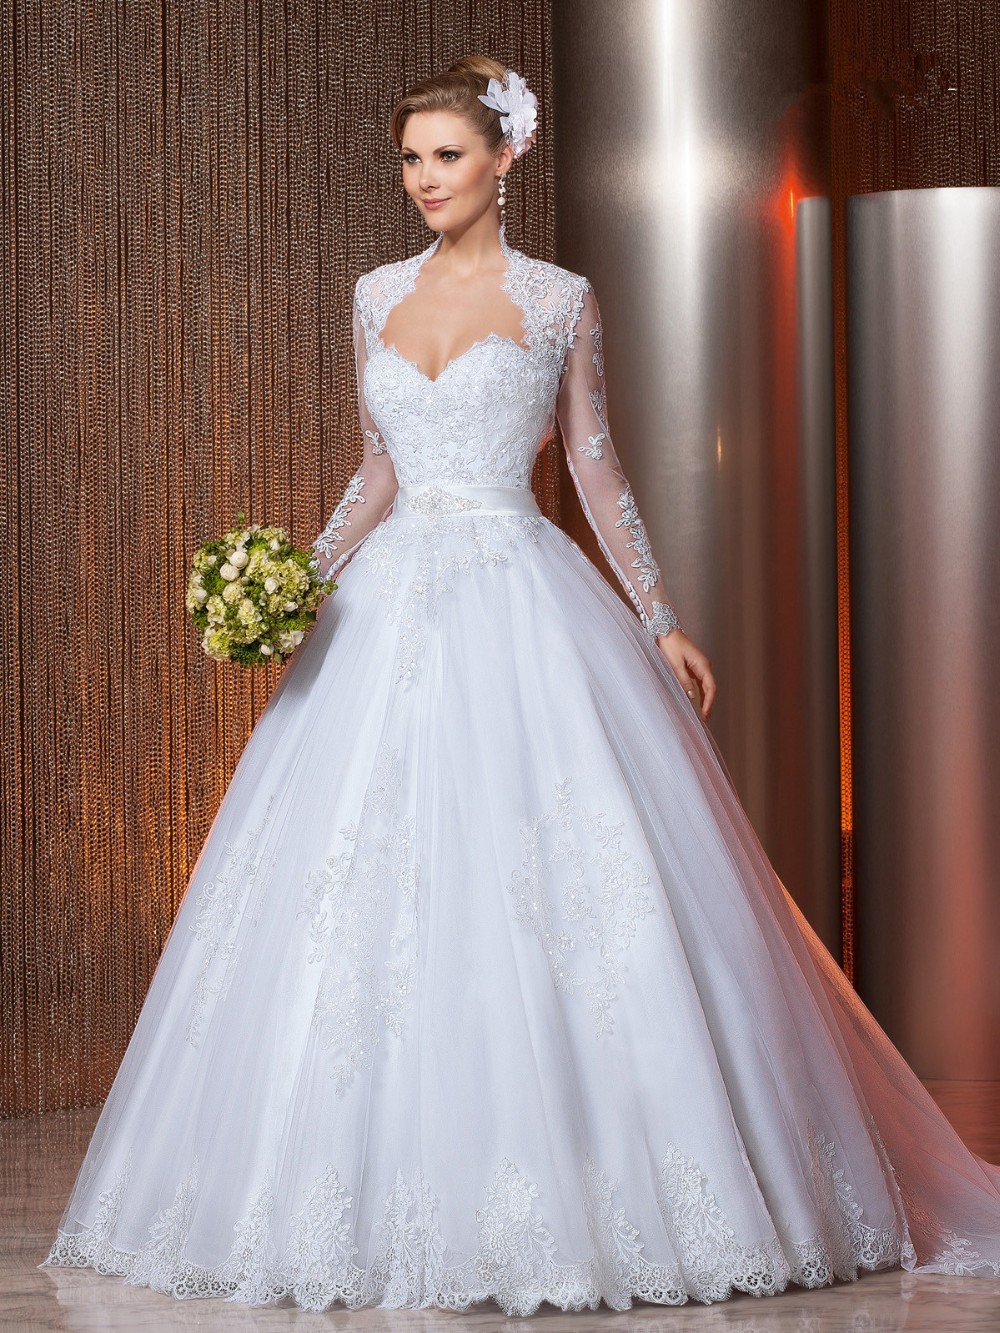 sweetheart neckline fishtail wedding dresses sweetheart neckline wedding dress Trumpet Mermaid Wedding Dresses Uk